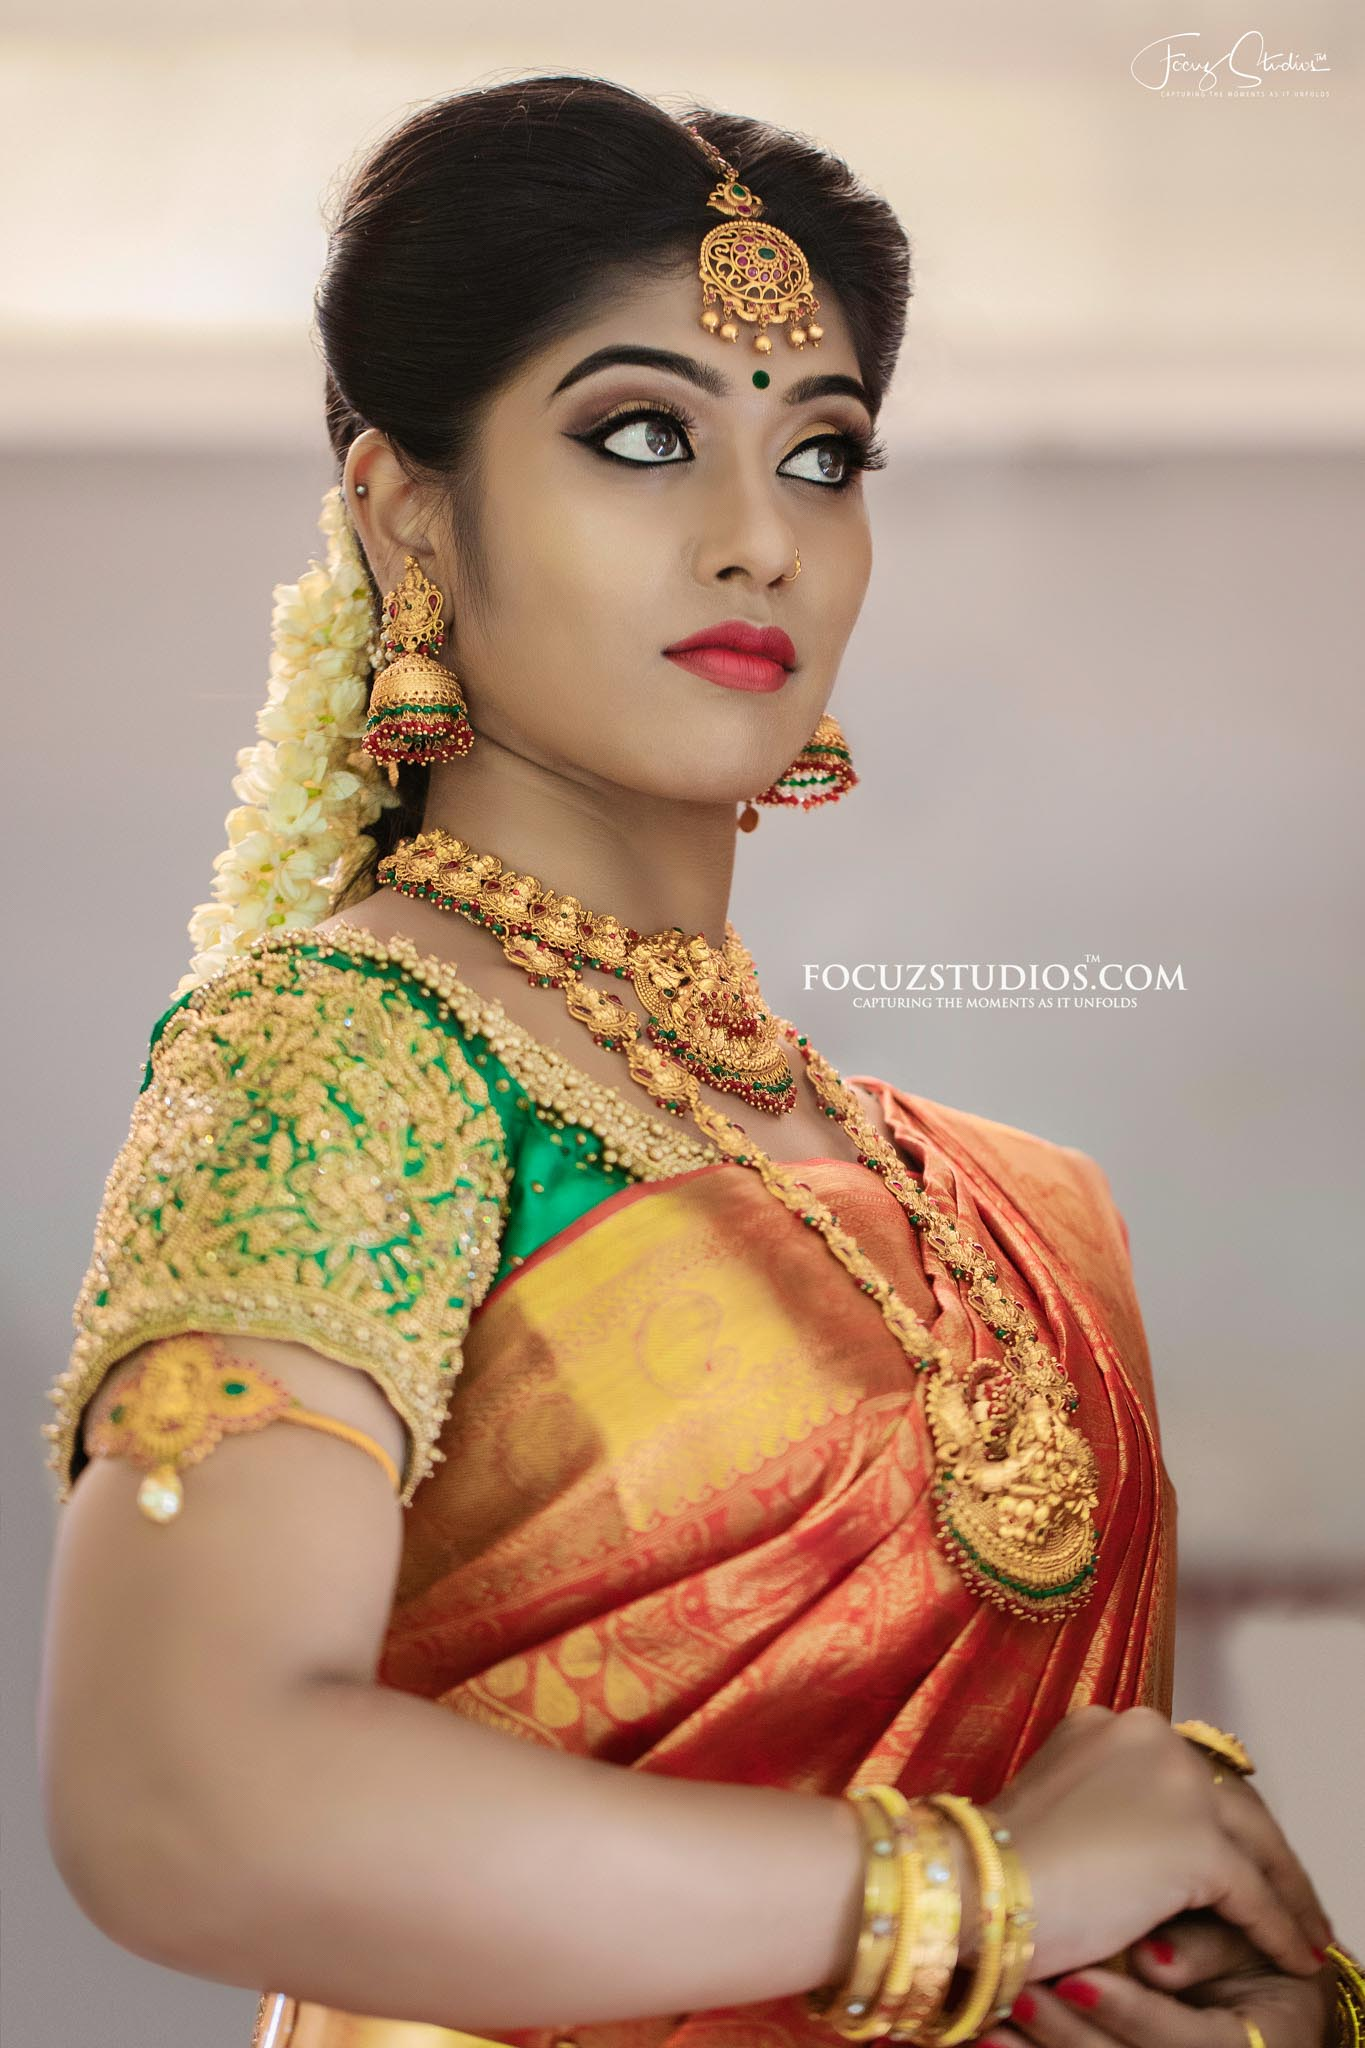 best-south-indian-bridal-portrait-poses-focuz-studios-1